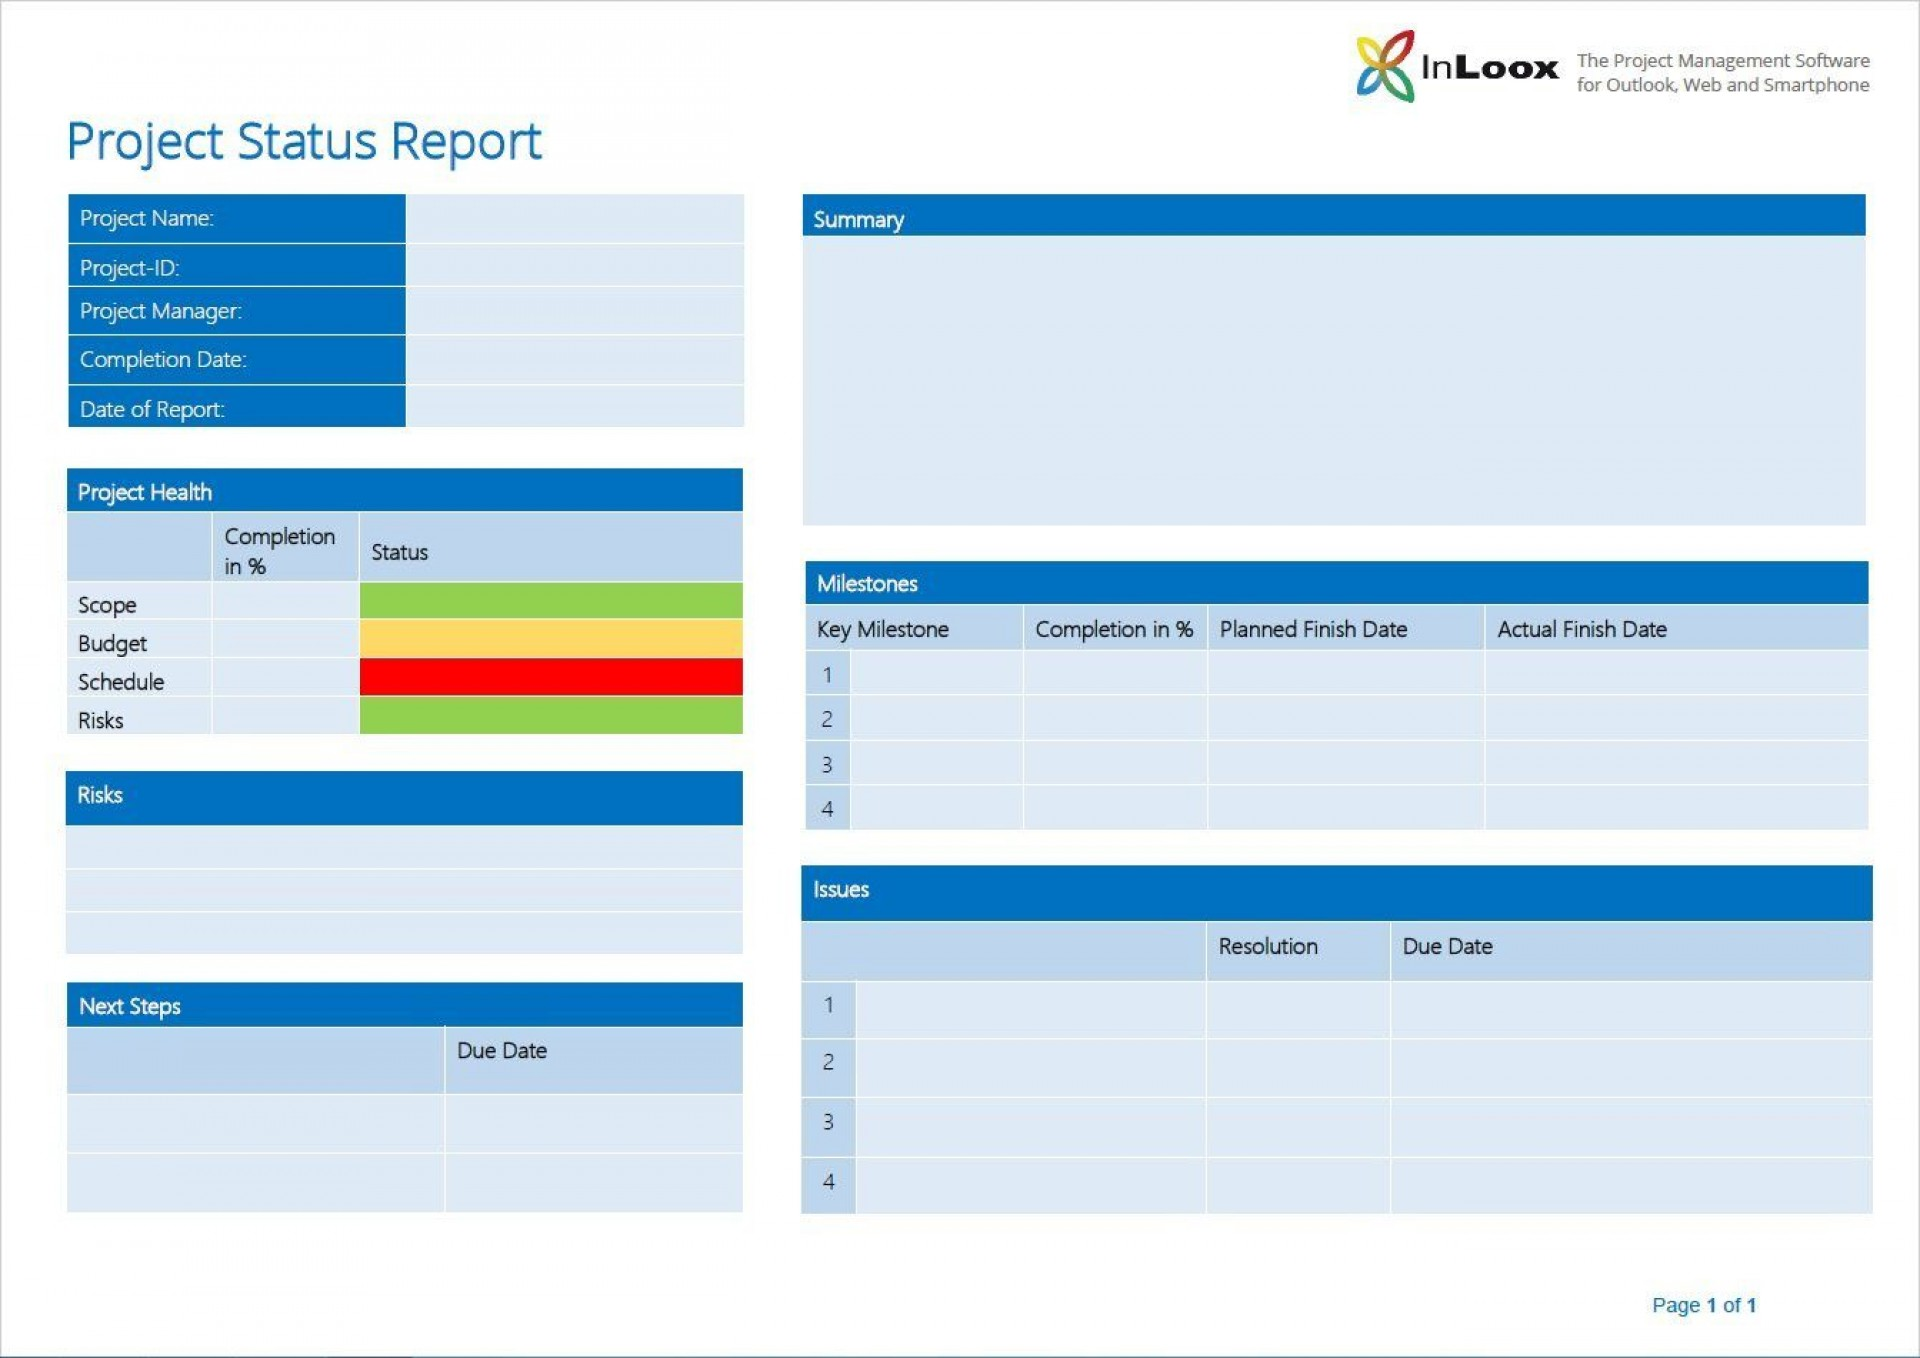 006 Stunning Project Management Progres Report Example  Statu Template Monthly Weekly Ppt1920